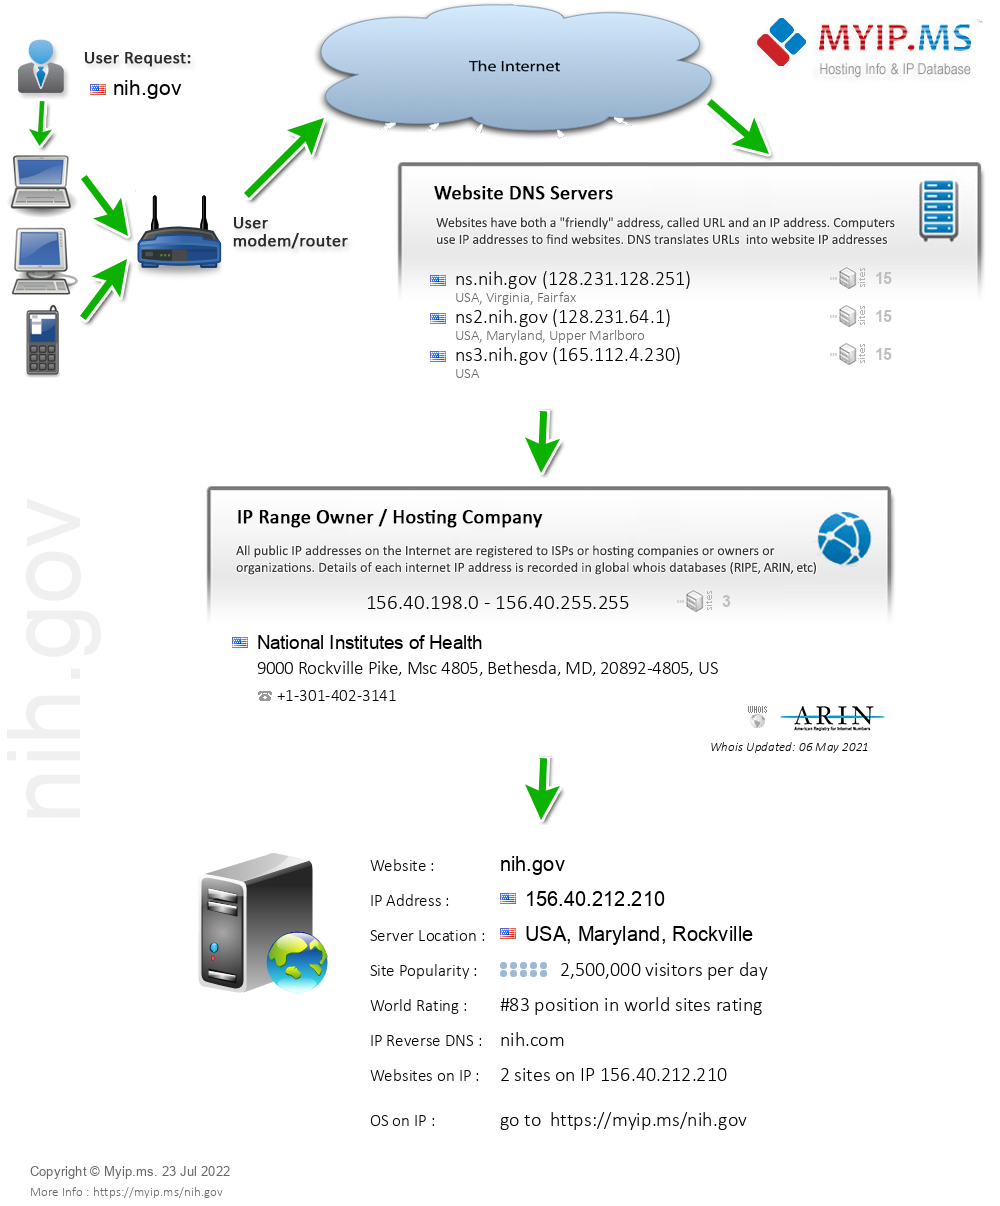 Nih.gov - Website Hosting Visual IP Diagram